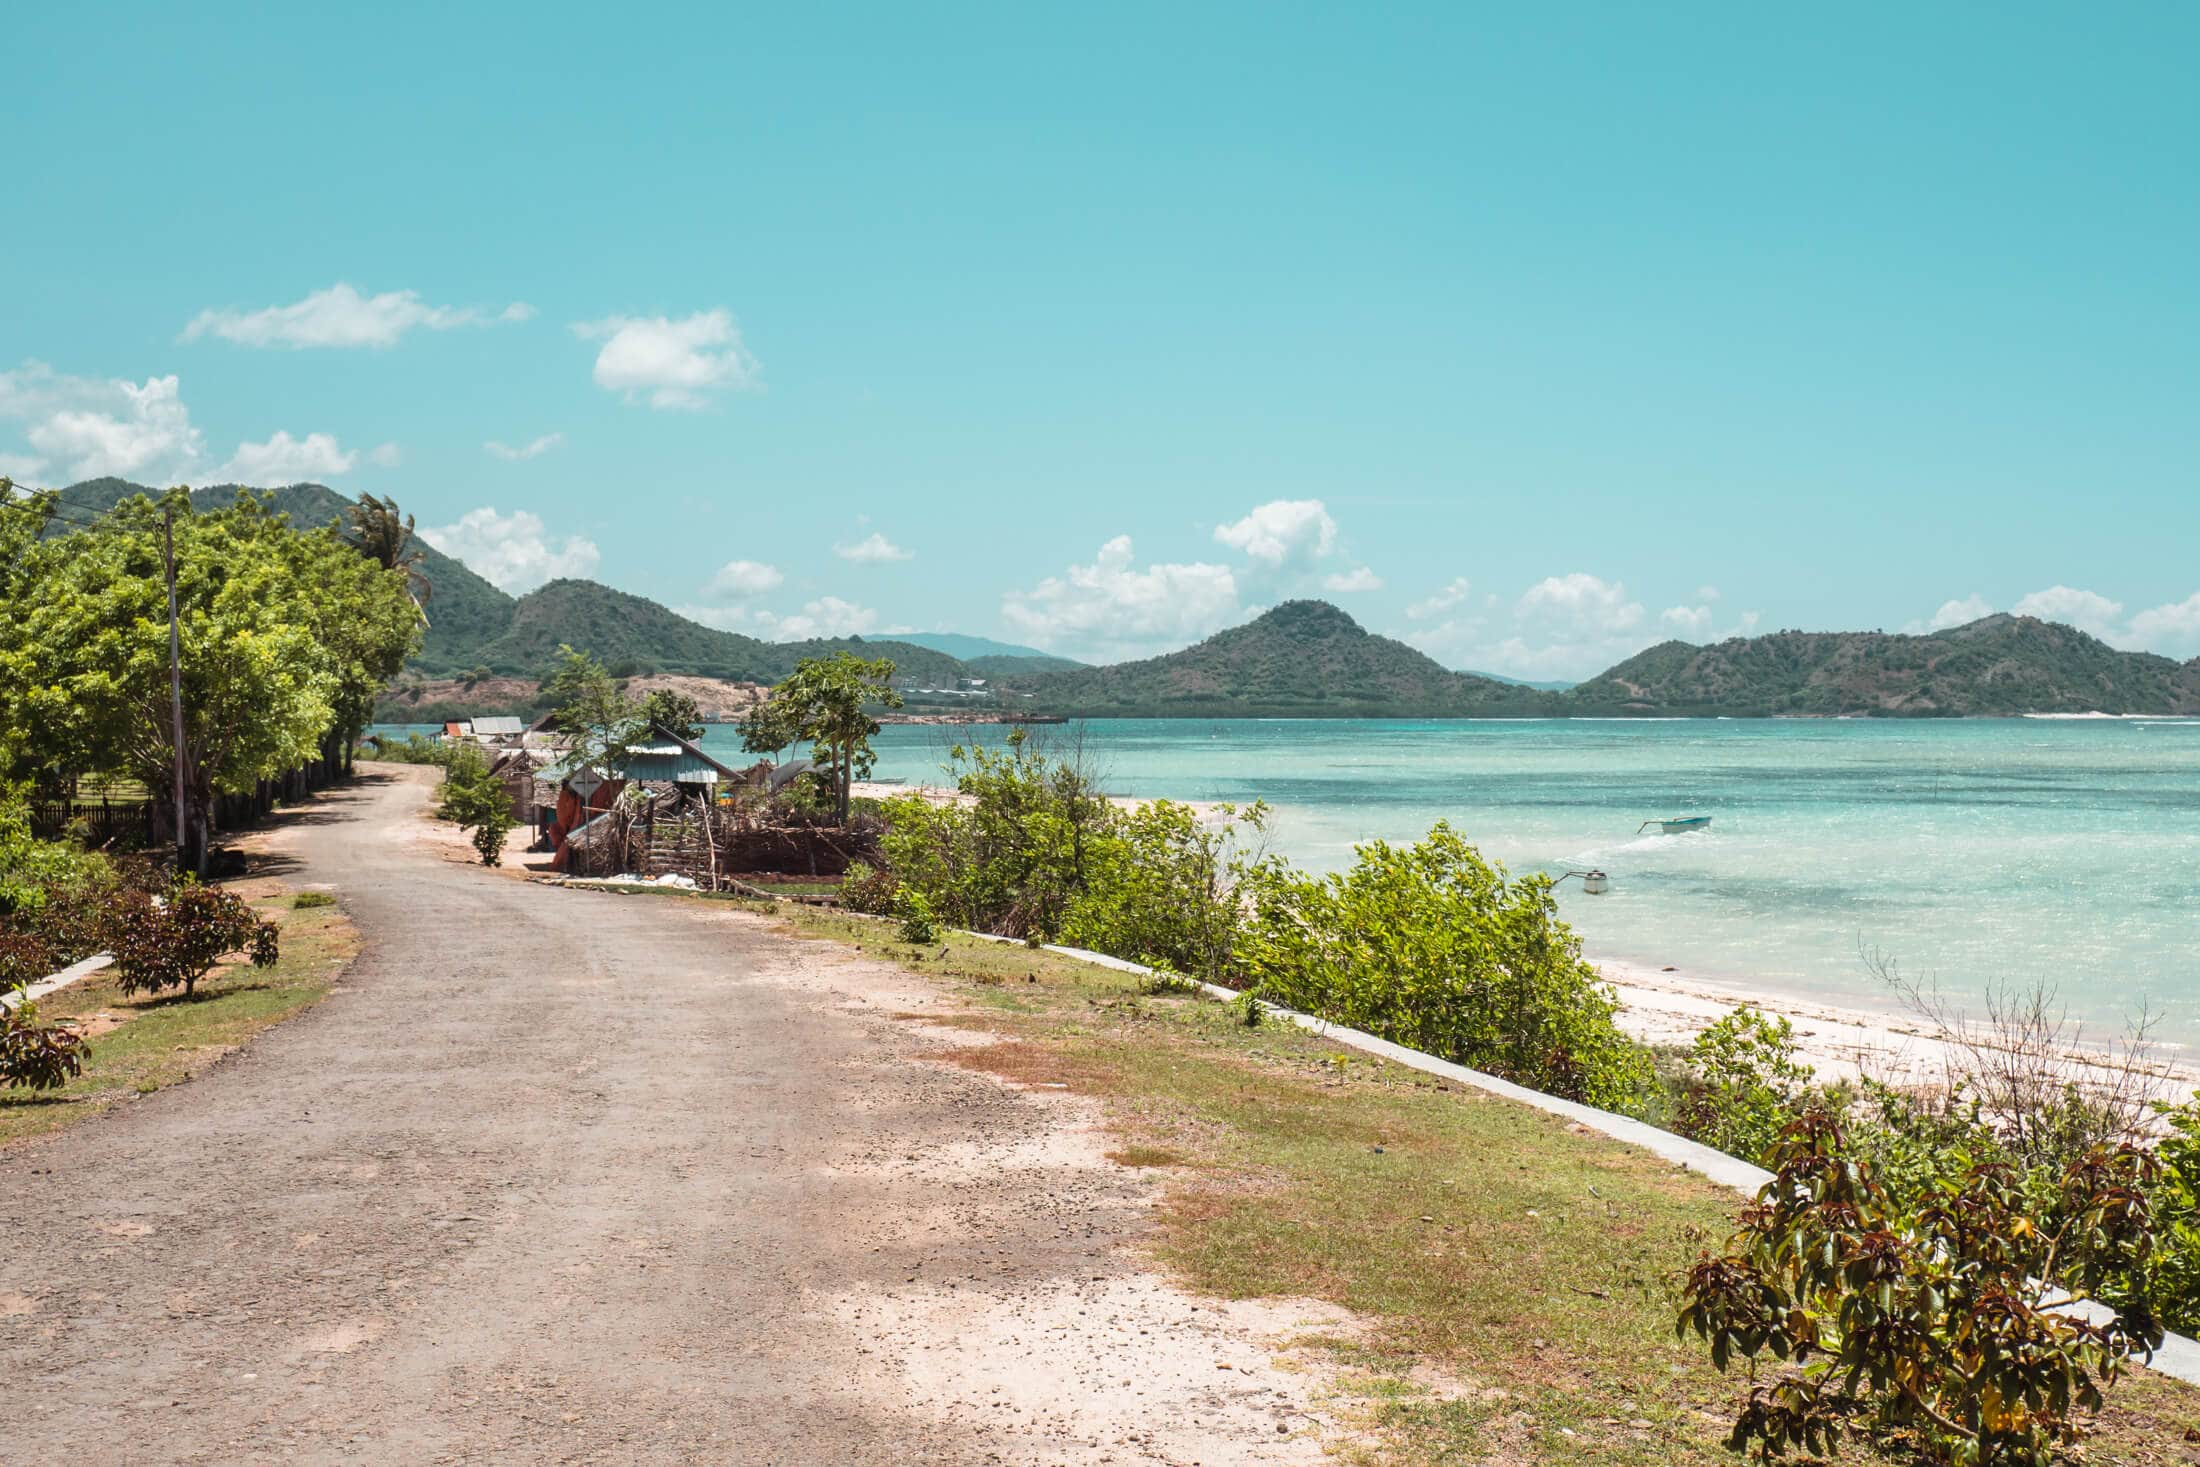 Road leading to Kertasari Village from Whales & Waves Resort in Sumbawa, Indonesia - The most amazing place I've ever been